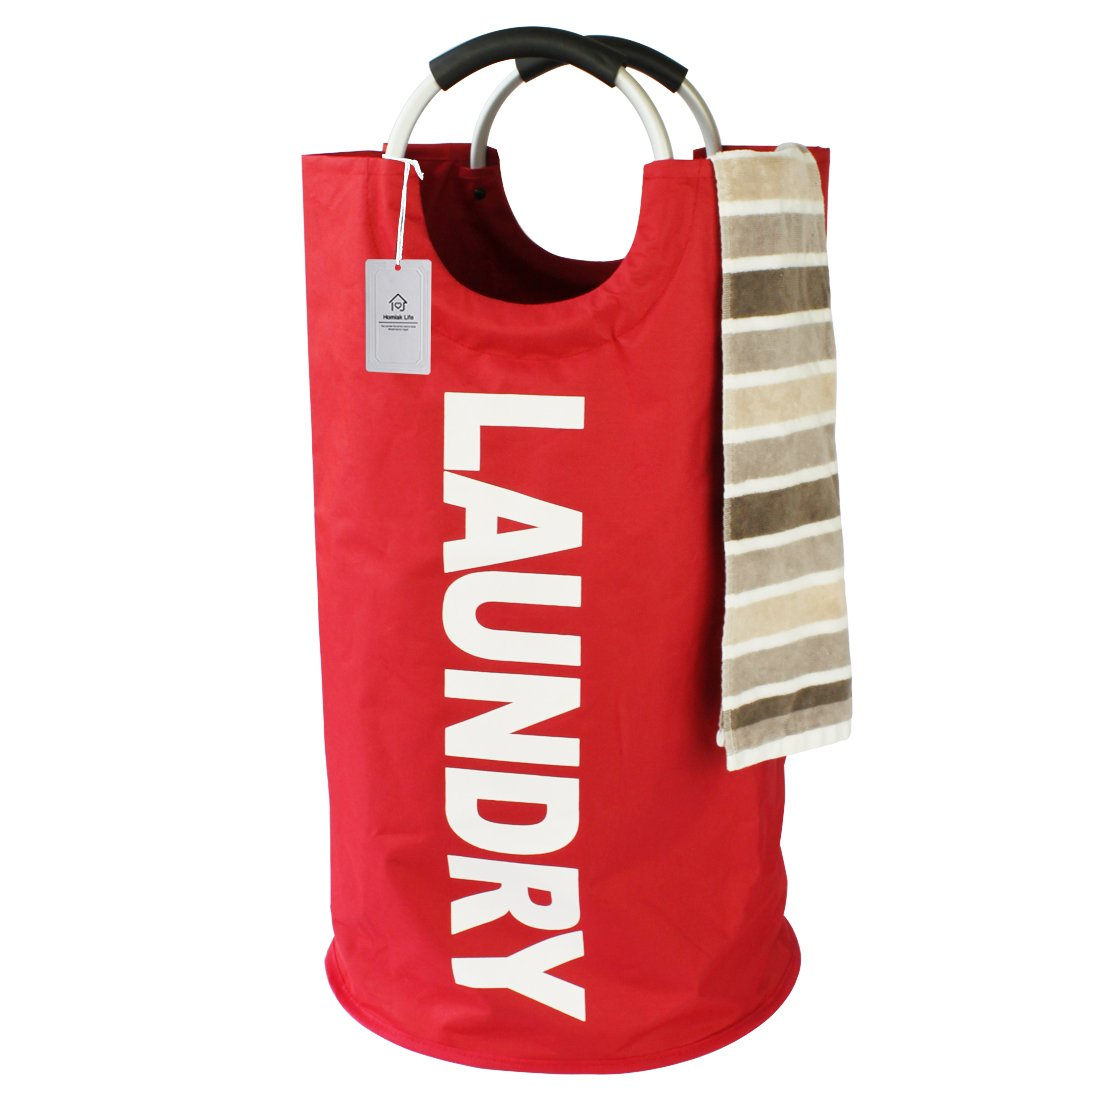 Thicken Laundry Bag with Alloy Handles for College, Camping and Home, Heavy Duty and Durable Canvas Utility, Shopping or Travel Bag, Collapsible and Self Standing as Laundry Basket (Red)